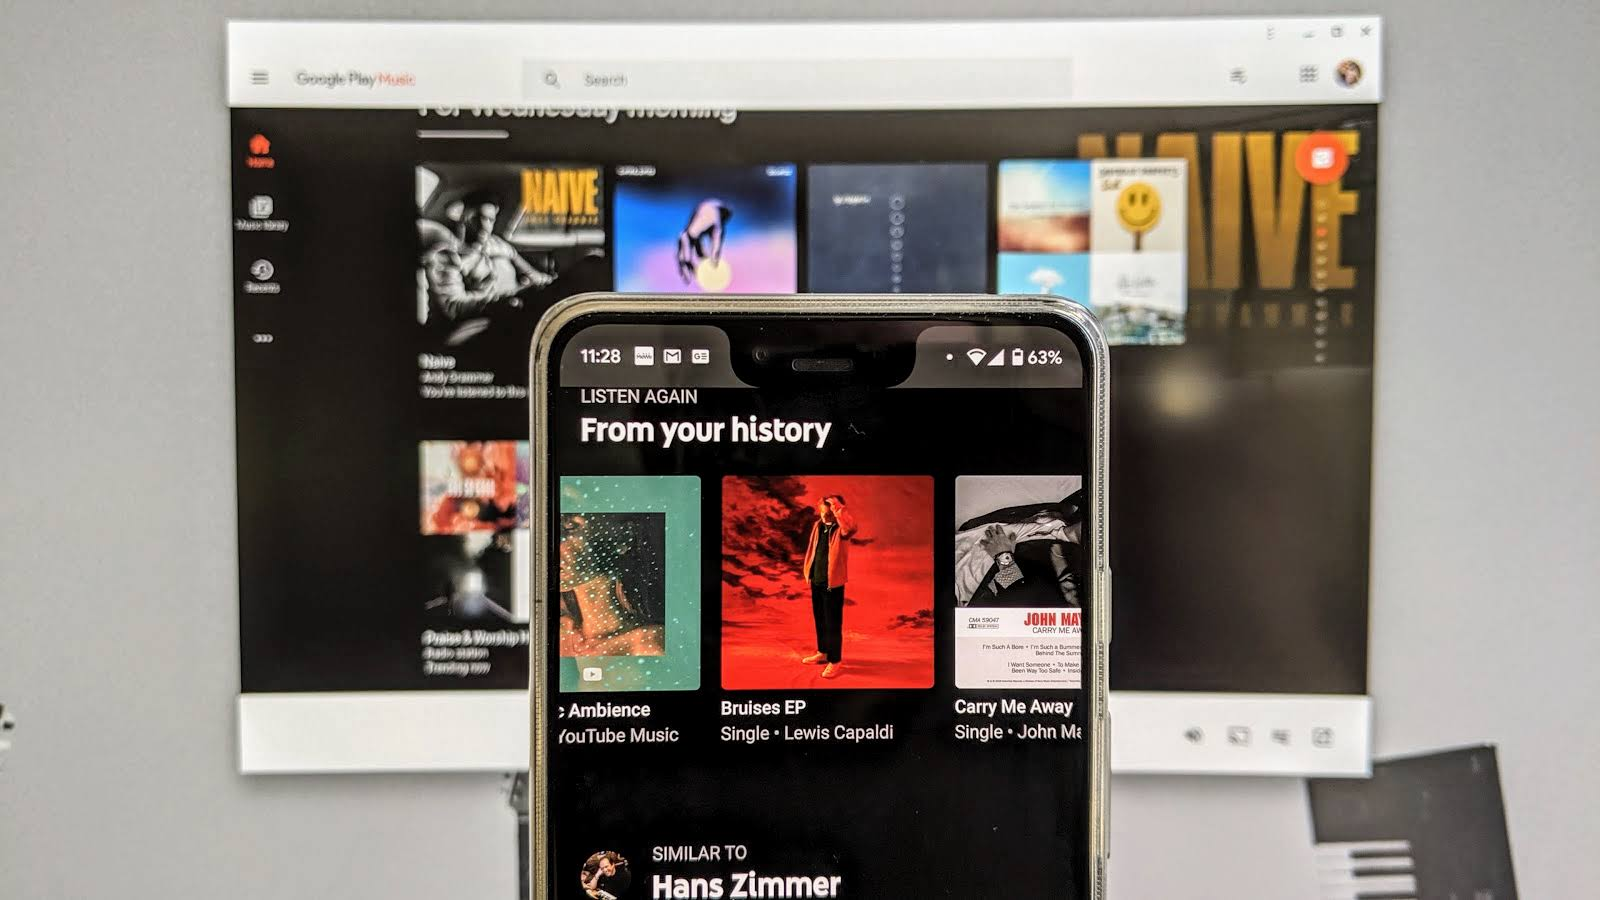 Youtube Music Migration For Google Play Music Users Could Be Coming Soon